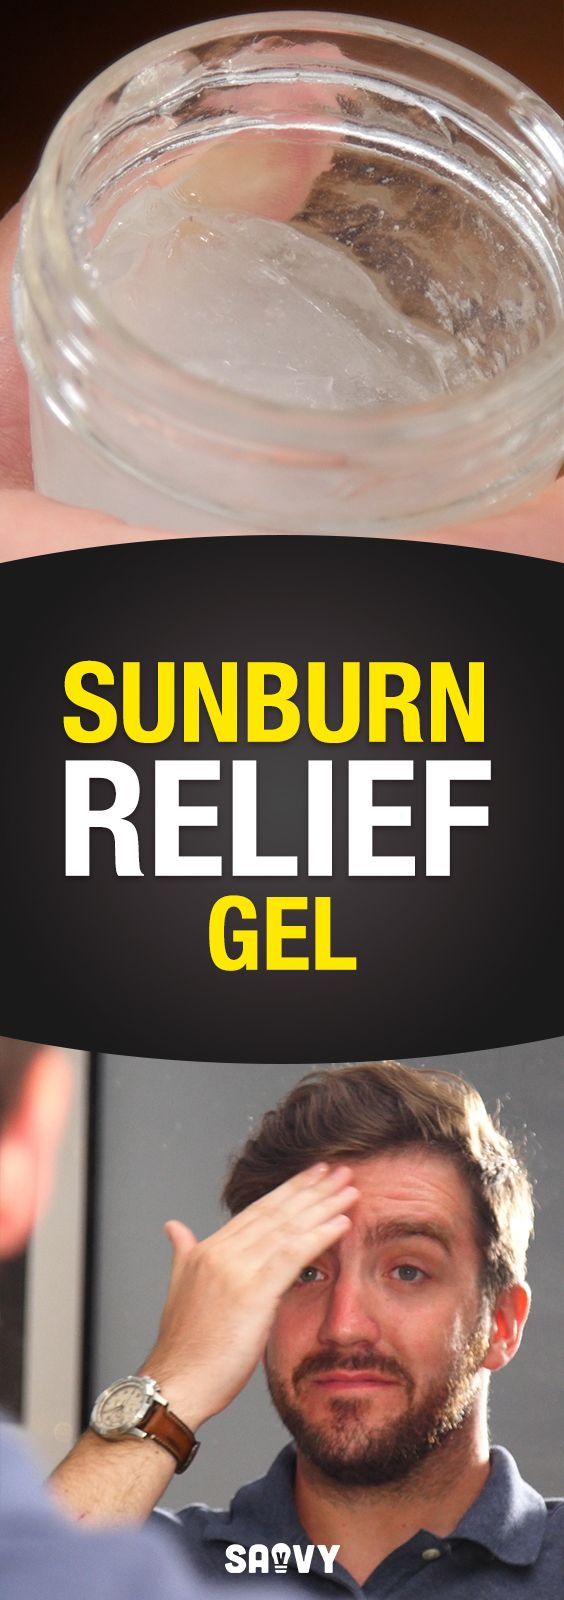 Check out this all-natural homemade sunburn relief gel! It's great for when you've spent too much time in the sun (and are feeling a little too crispy!). Aloe Vera is great for calming sunburns, lavender essential oil can reduce the amount of peeling and itching and peppermint oil has an instant cooling effect that helps soothe the pain. Give it a go and let us know how it is!